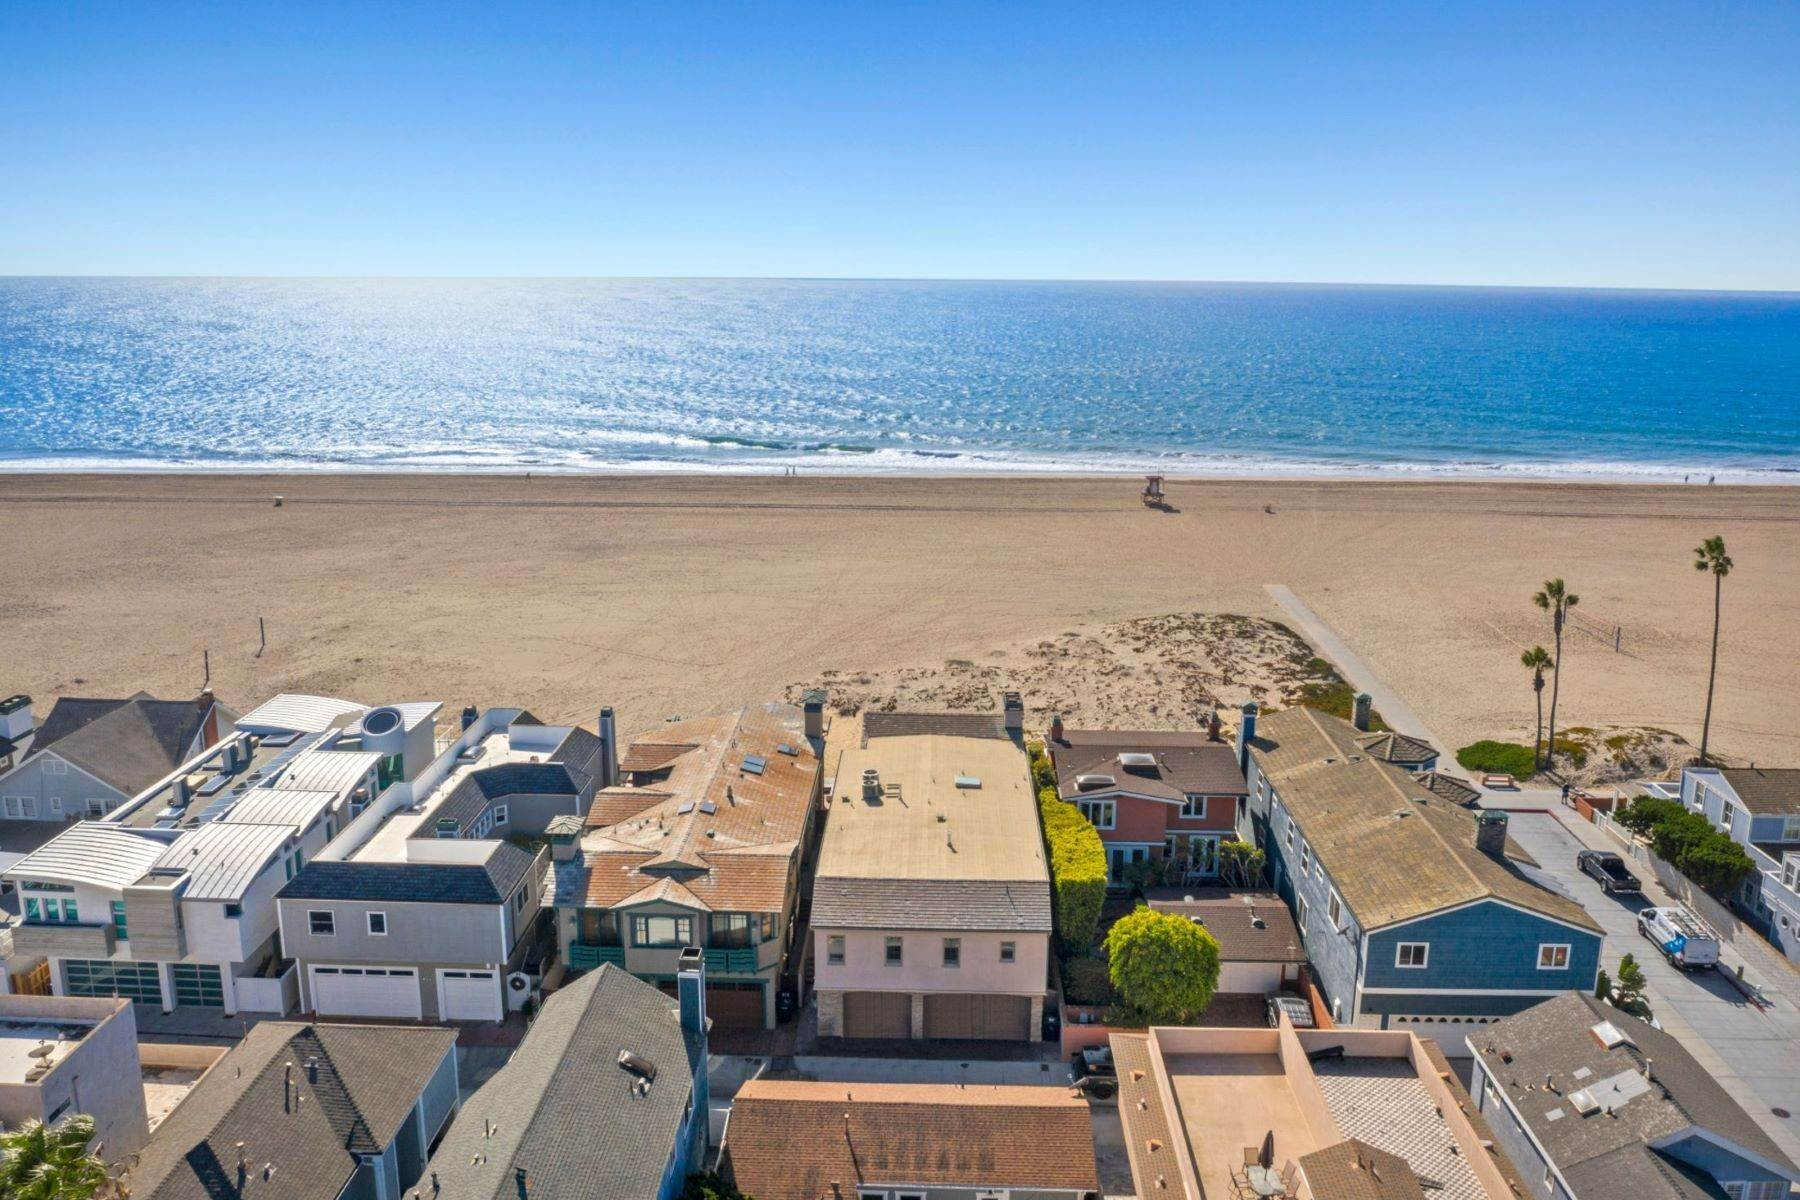 3. Single Family Homes for Sale at 930 Weat Oceanfront 930 W OCEANFRONT Newport Beach, California 92661 United States